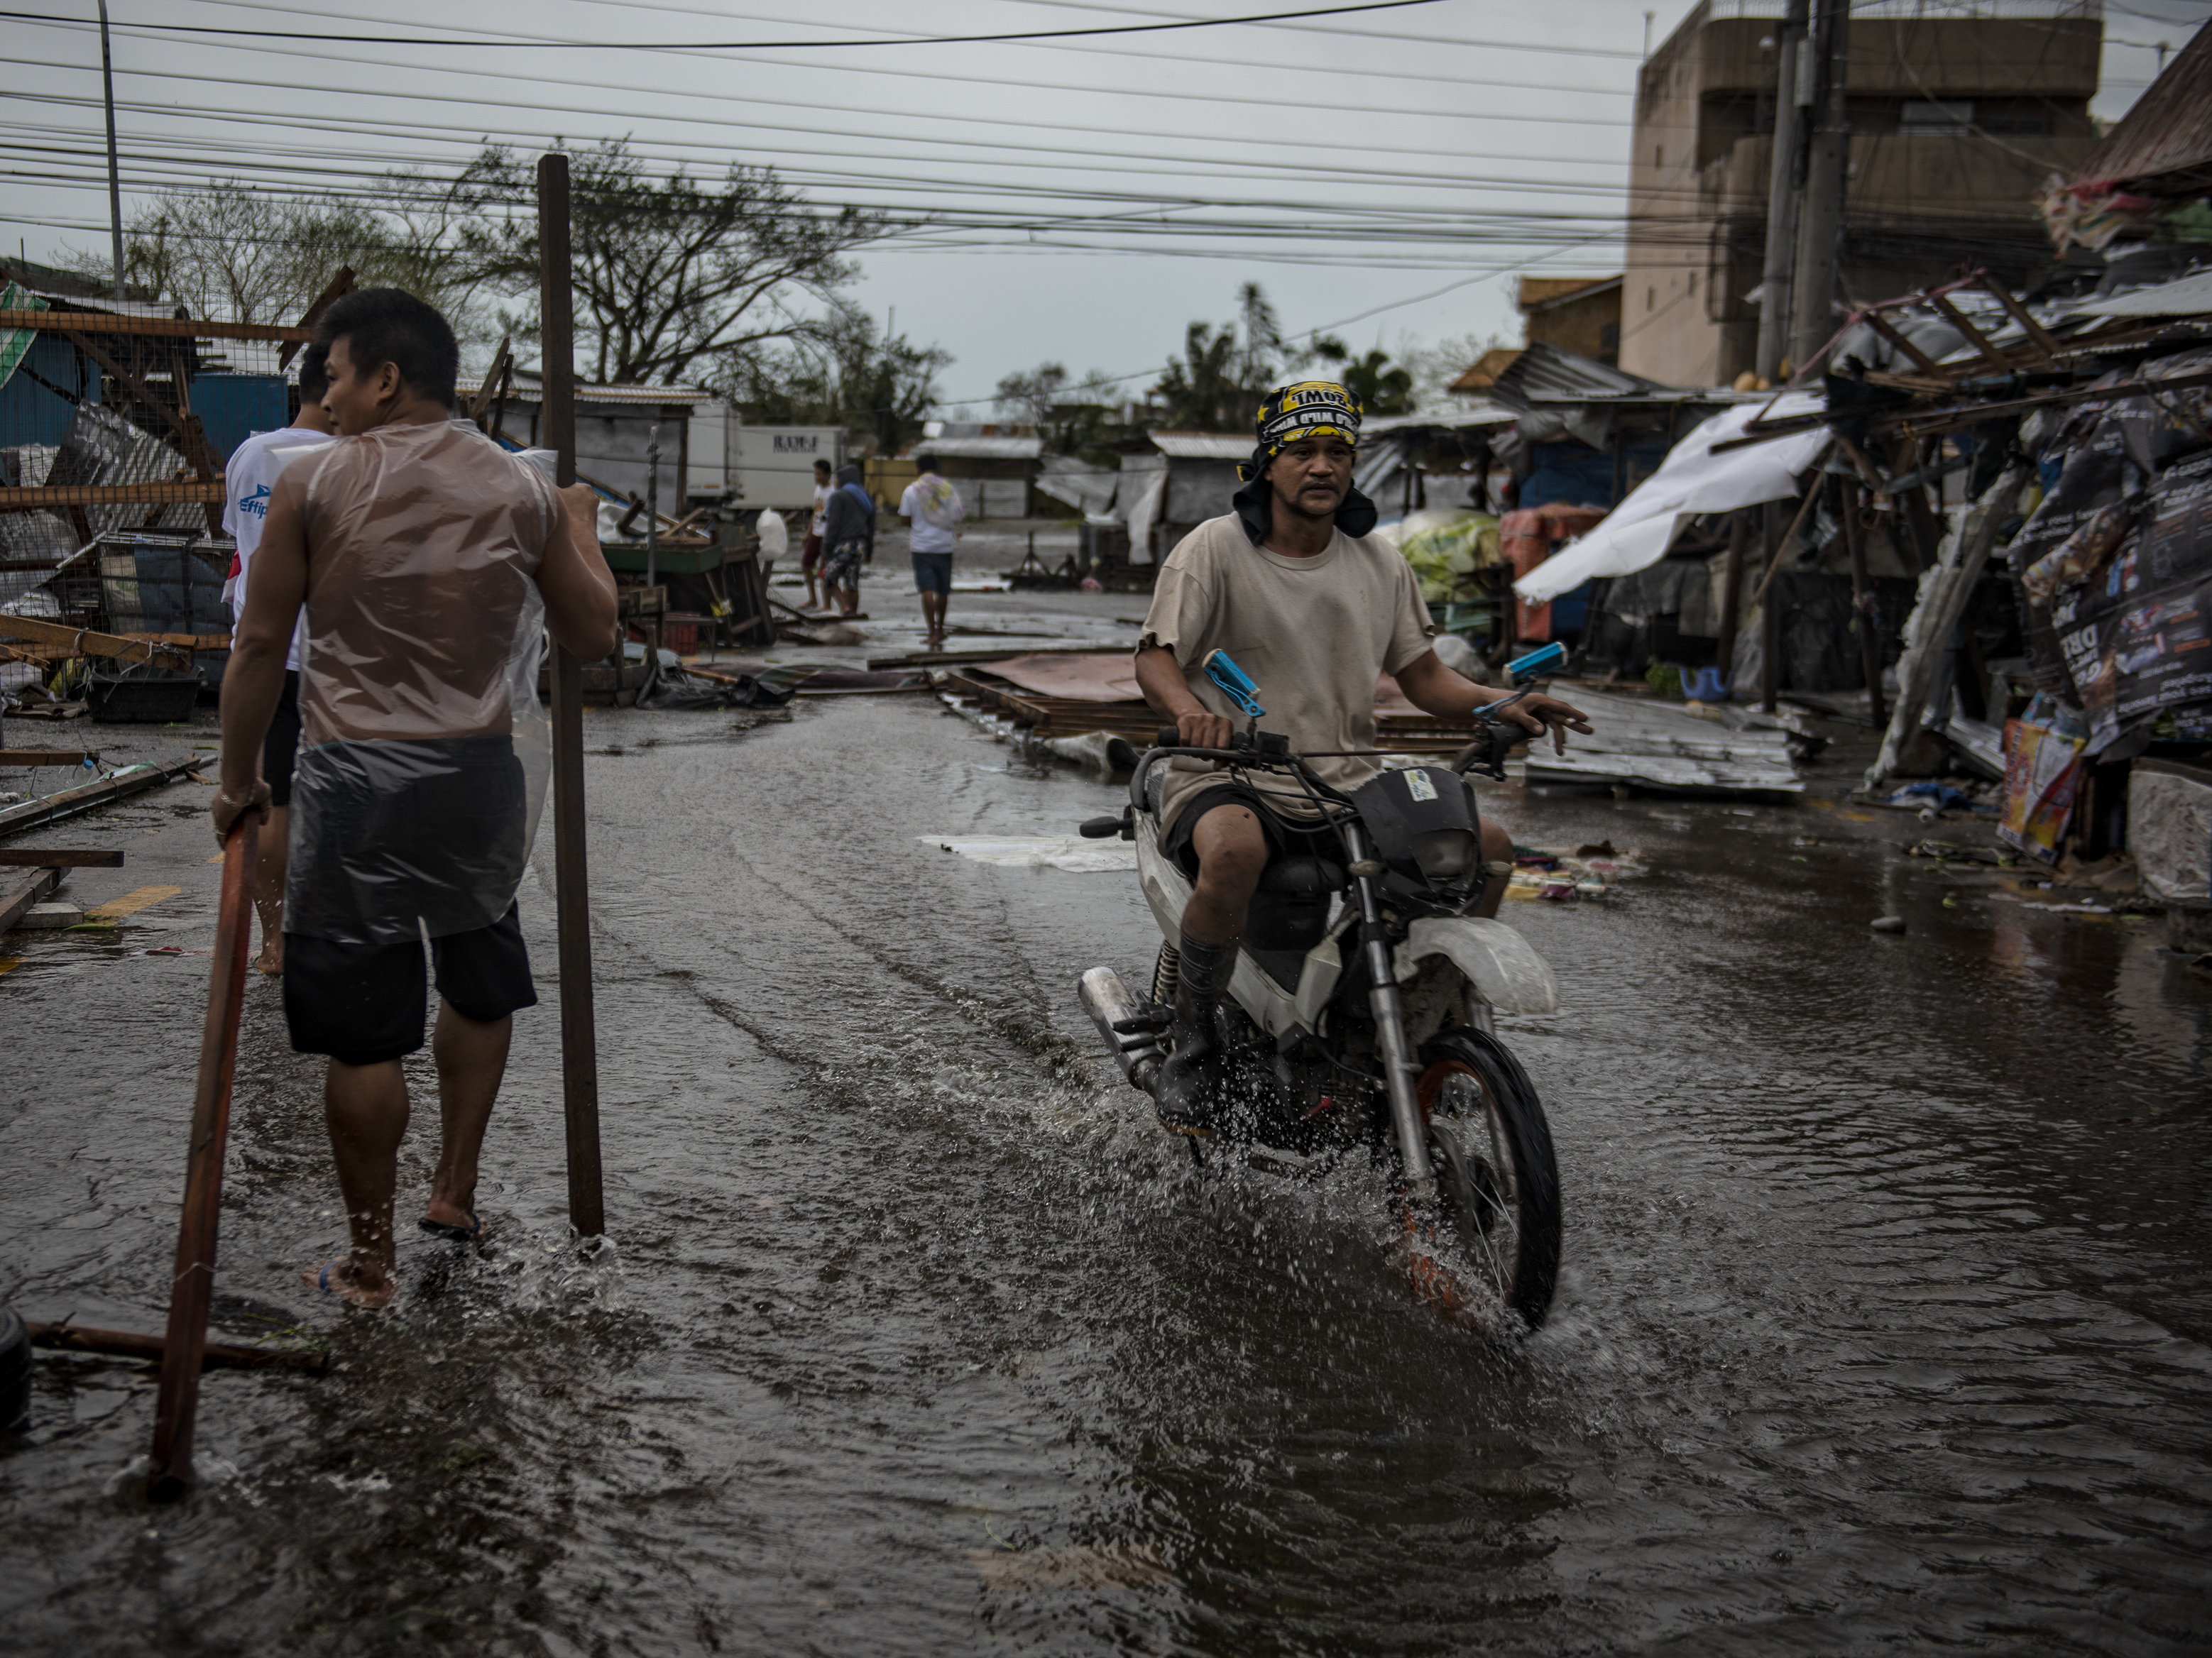 Residents walk on flooded streets as typhoon Mangkhut batters their city on Sept. 15 in Tuguegarao, Philippines. Typhoon Mangkhut hammered northern Philippines as it made landfall Saturday morning leaving at least 12 people dead.